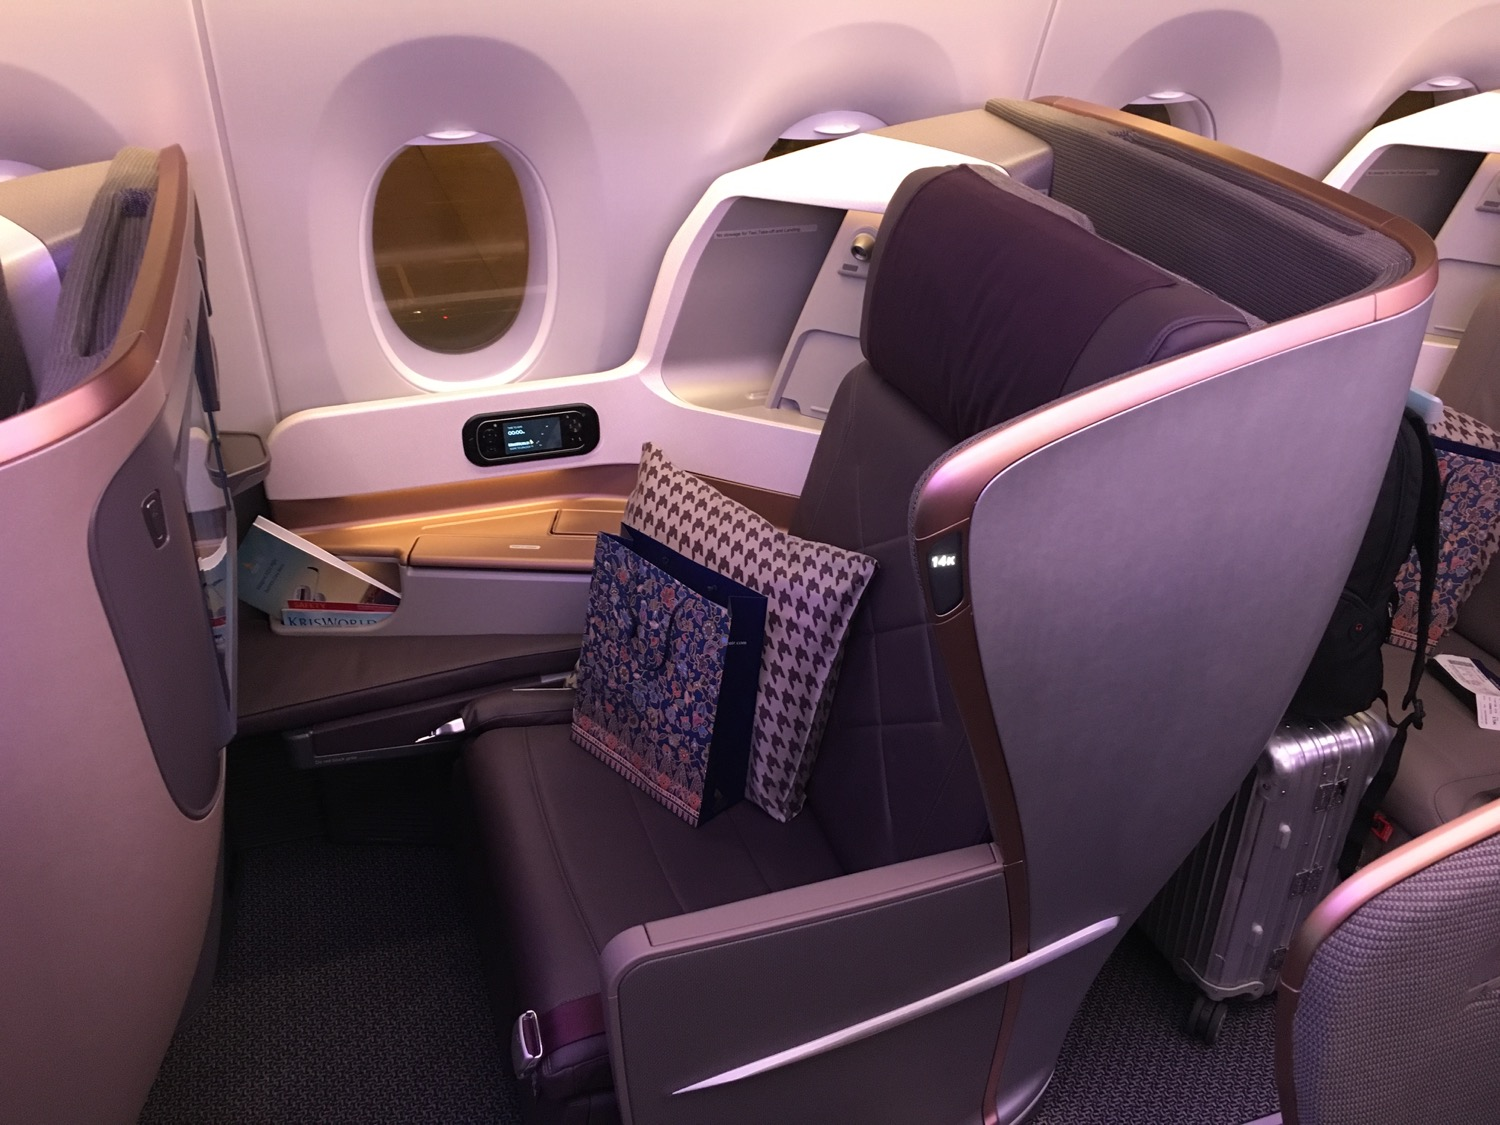 Singapore Airlines A350 Business Class Sitz - 1 (1)